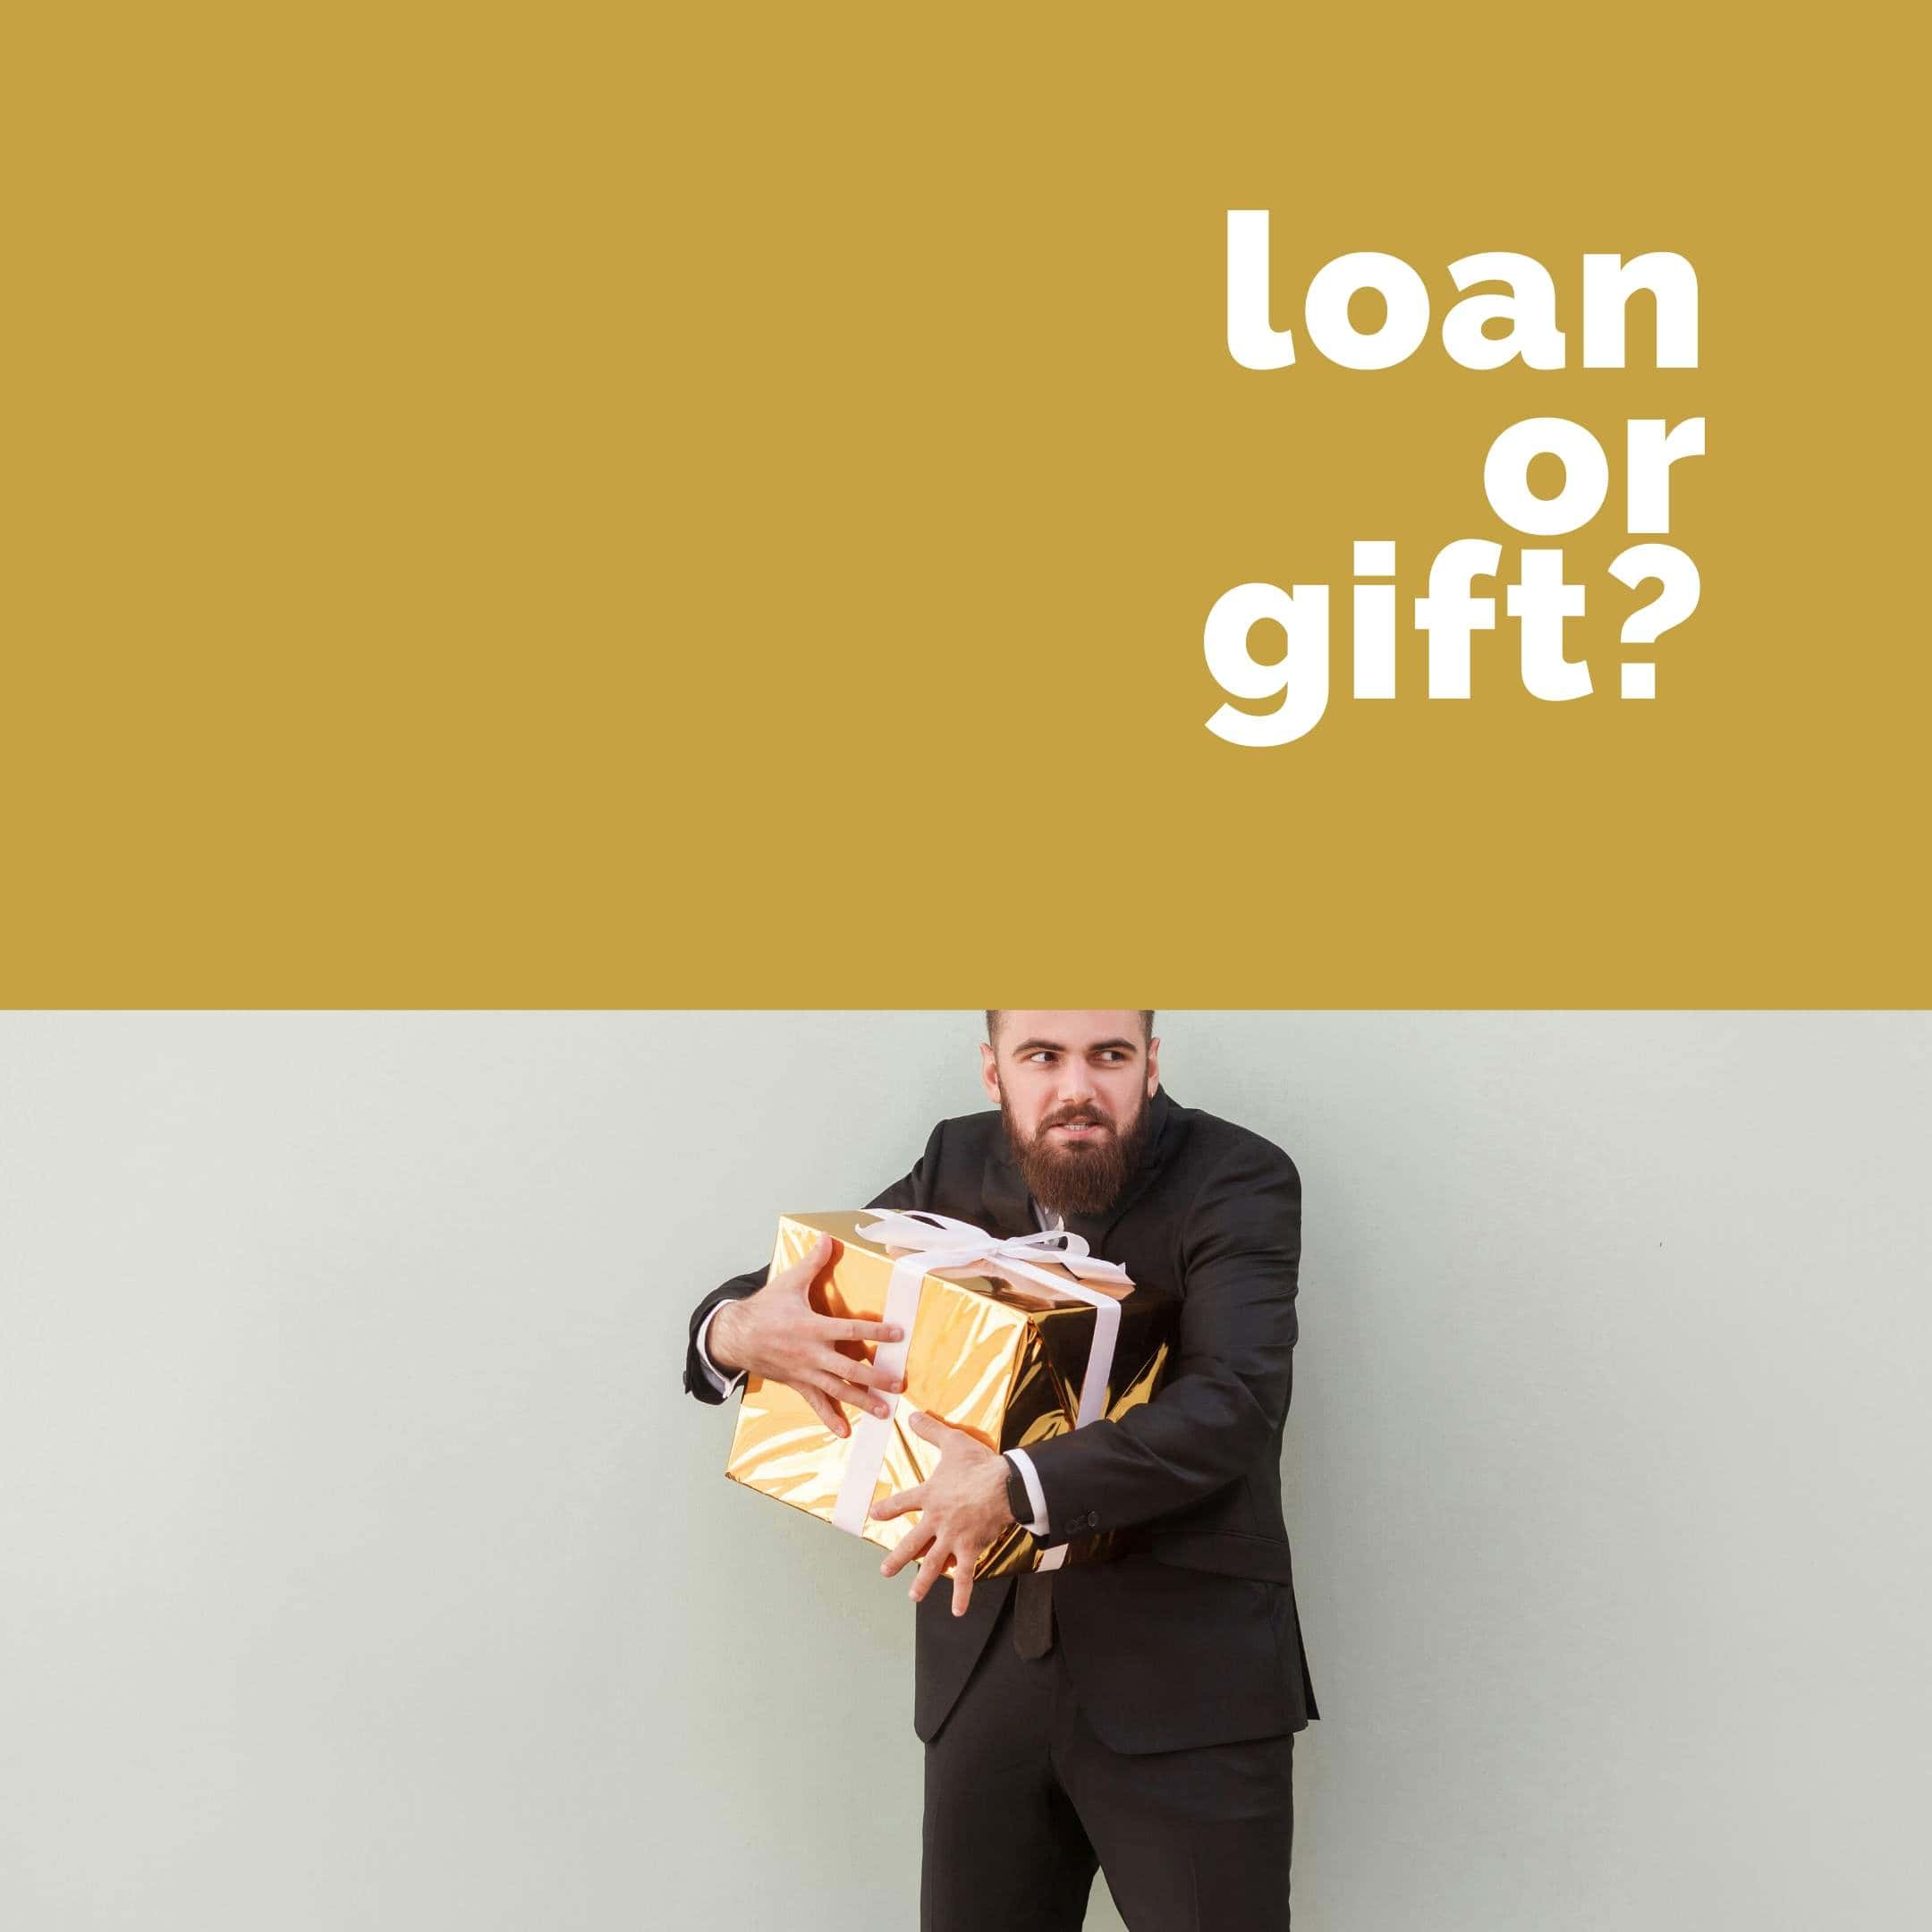 When Is A Loan Considered A Gift?